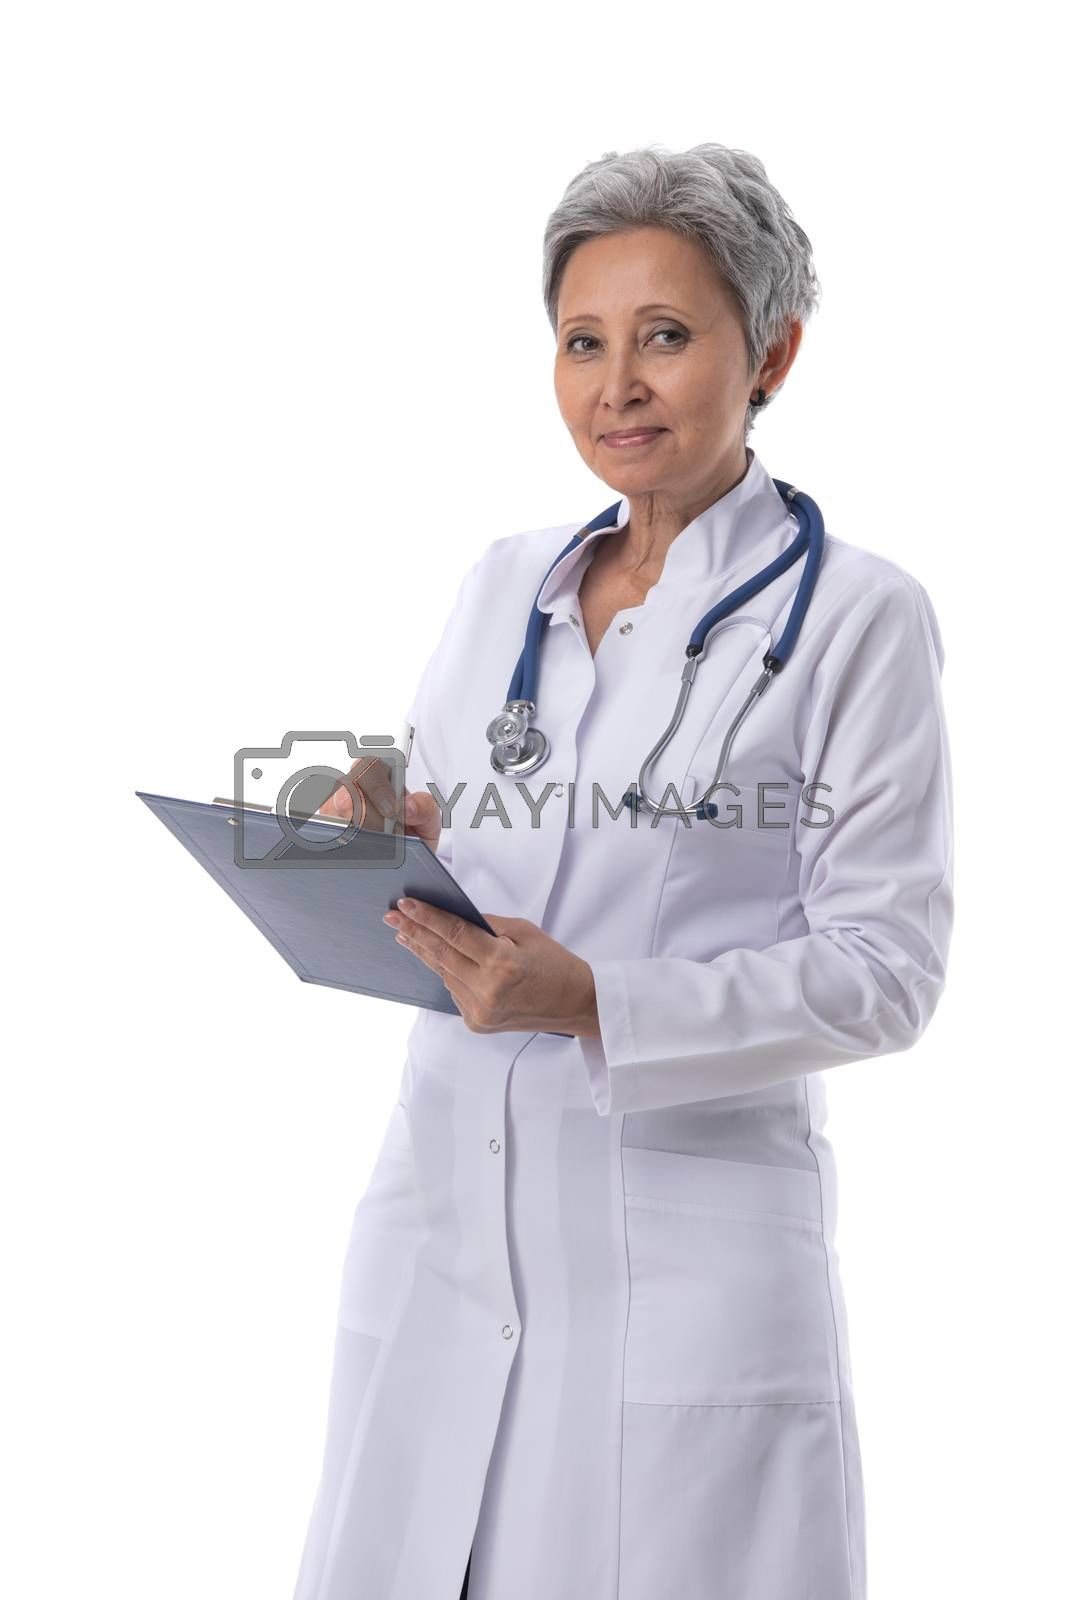 Asian mature female medical doctor with stethoscope taking notes isolated on white background